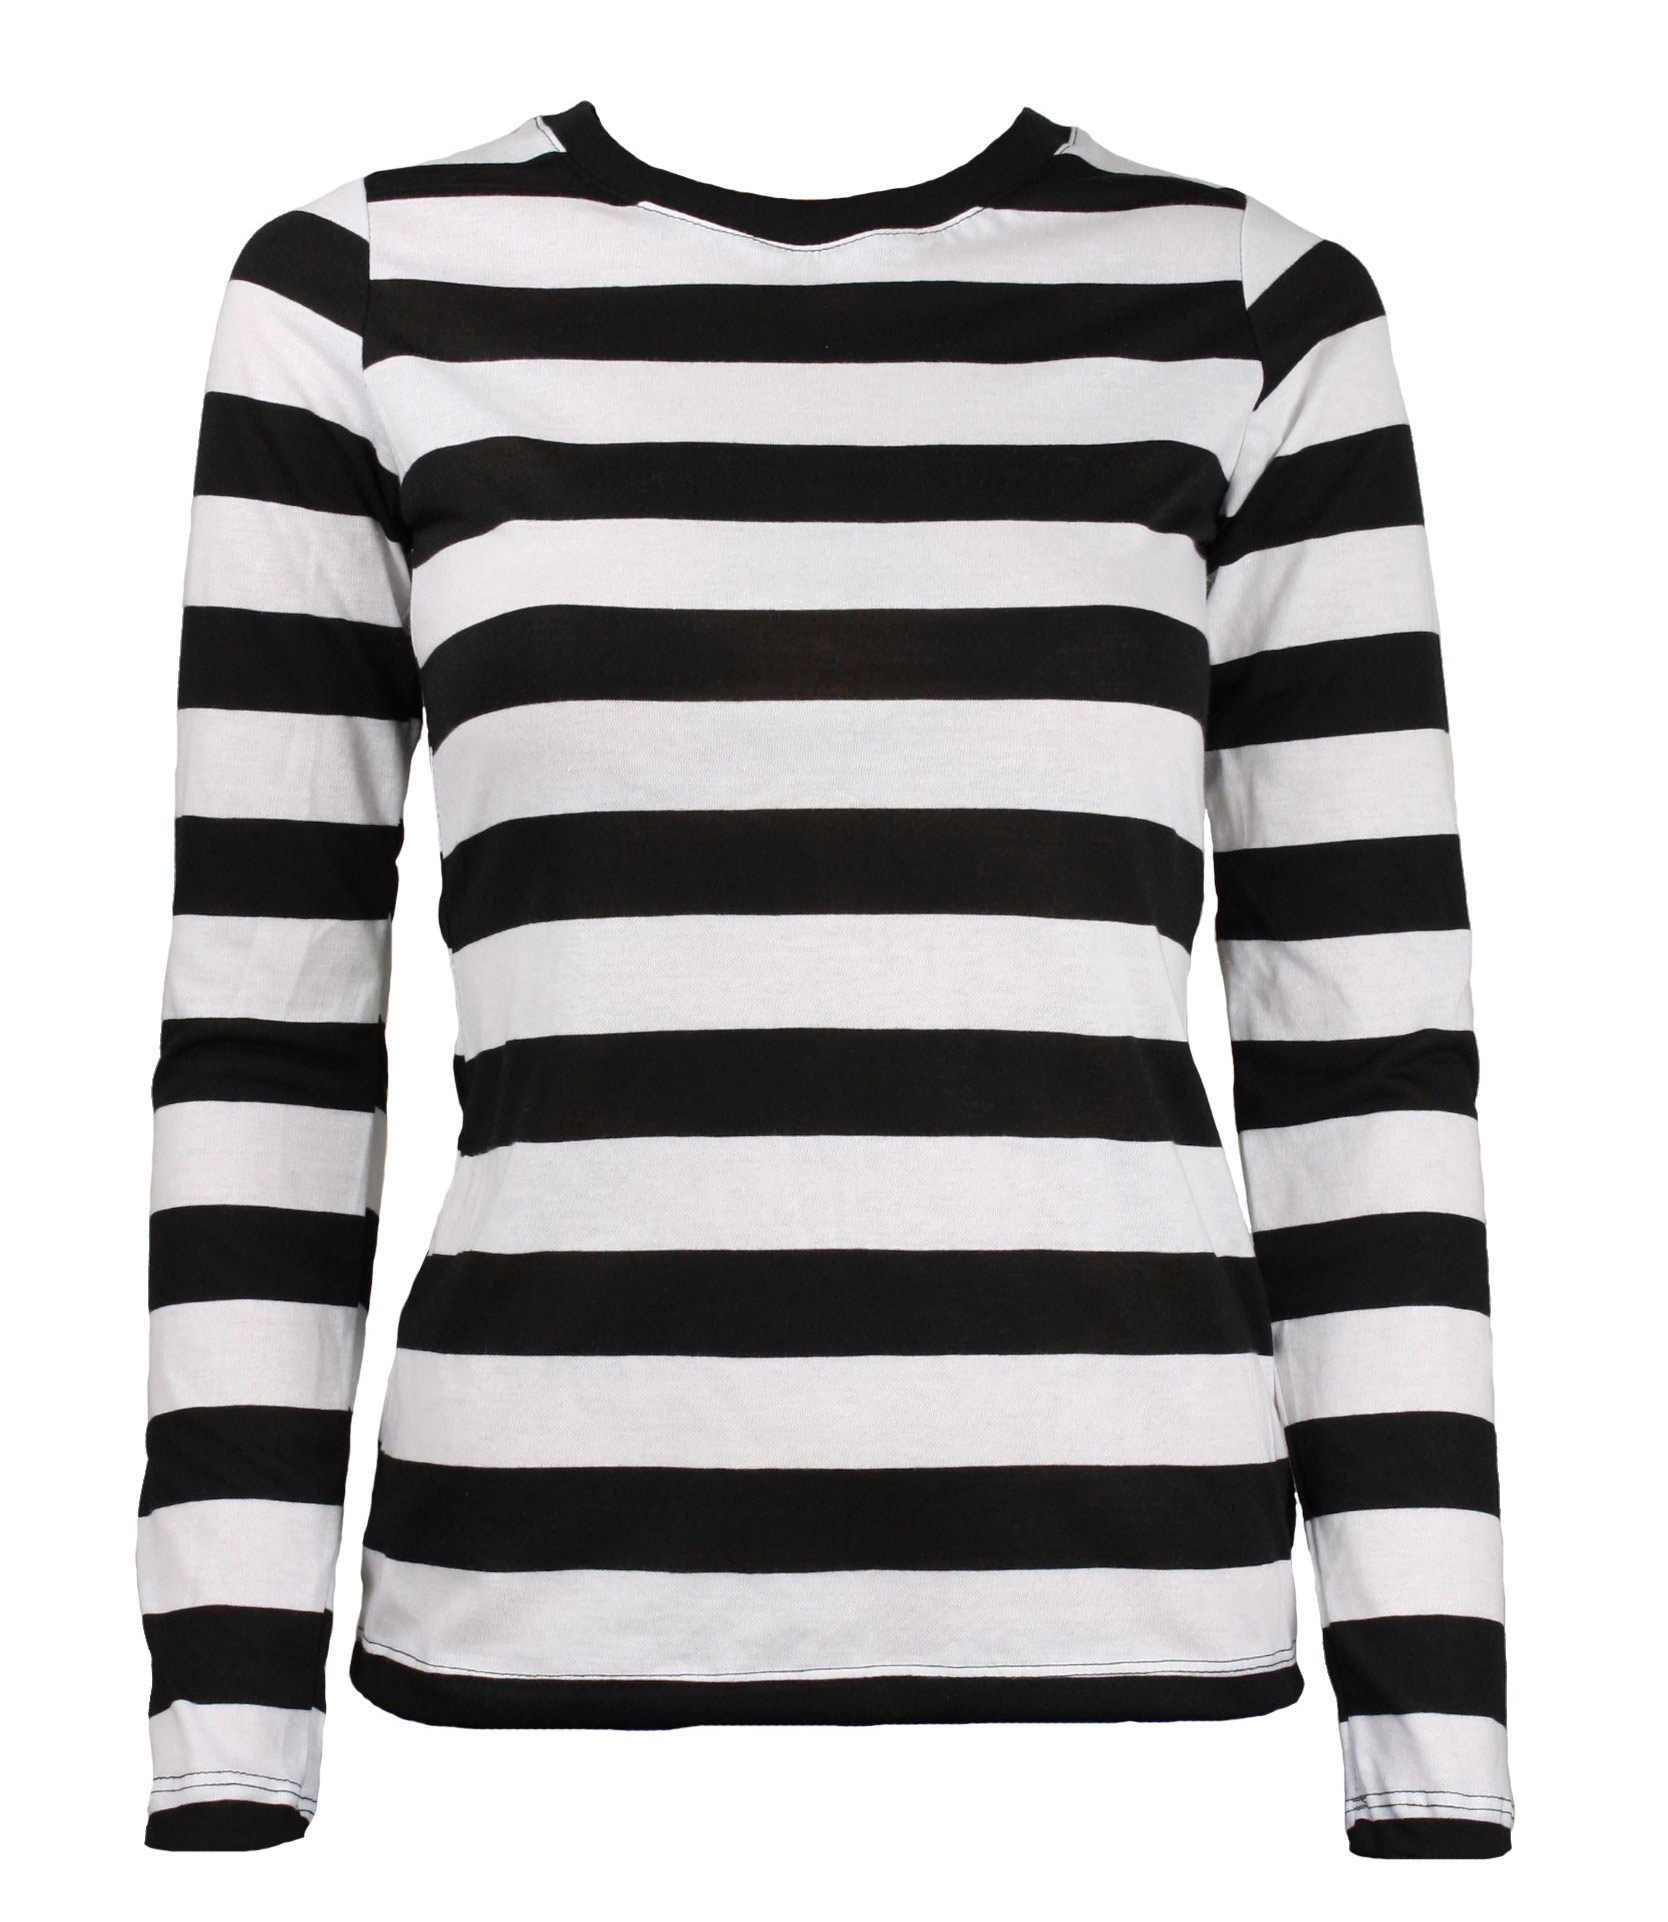 Tragic Mountain - Long Sleeve Black White Striped Women s Shirt Medium -  Walmart.com bdcbdff1cd3b